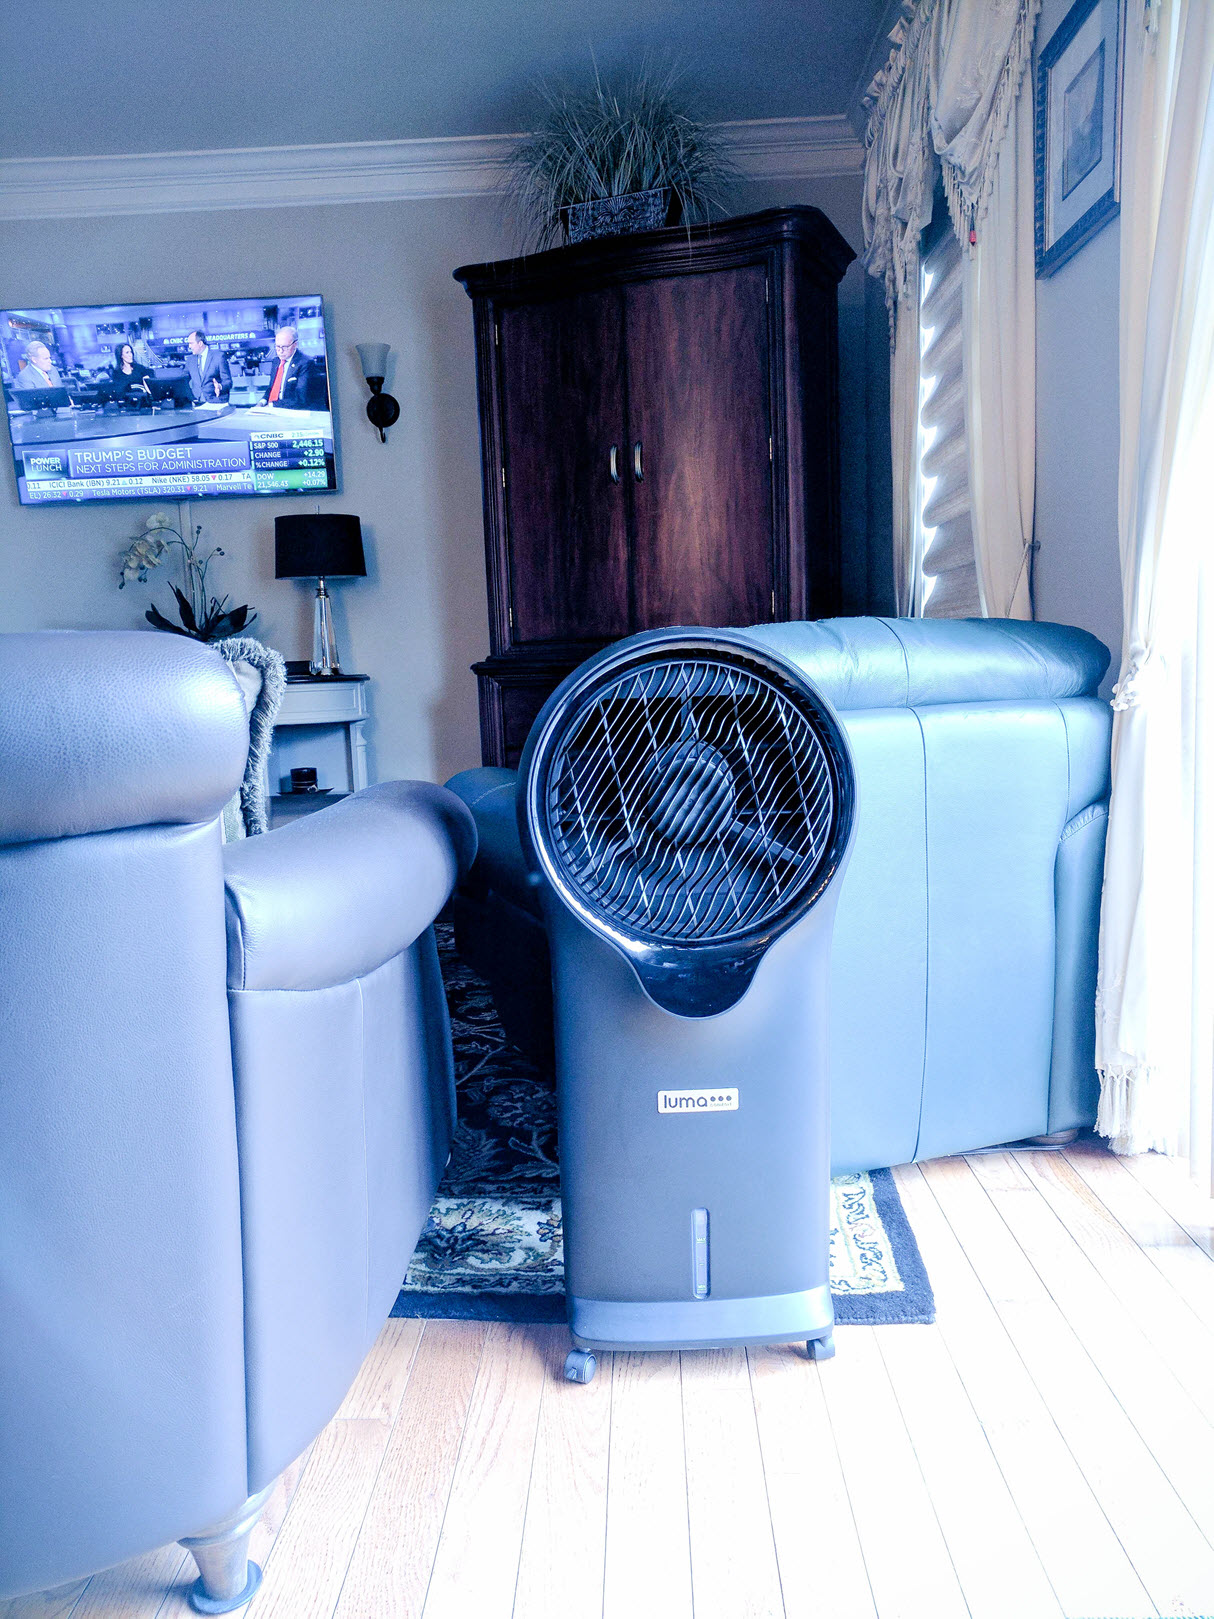 Luma Evaporative Cooler